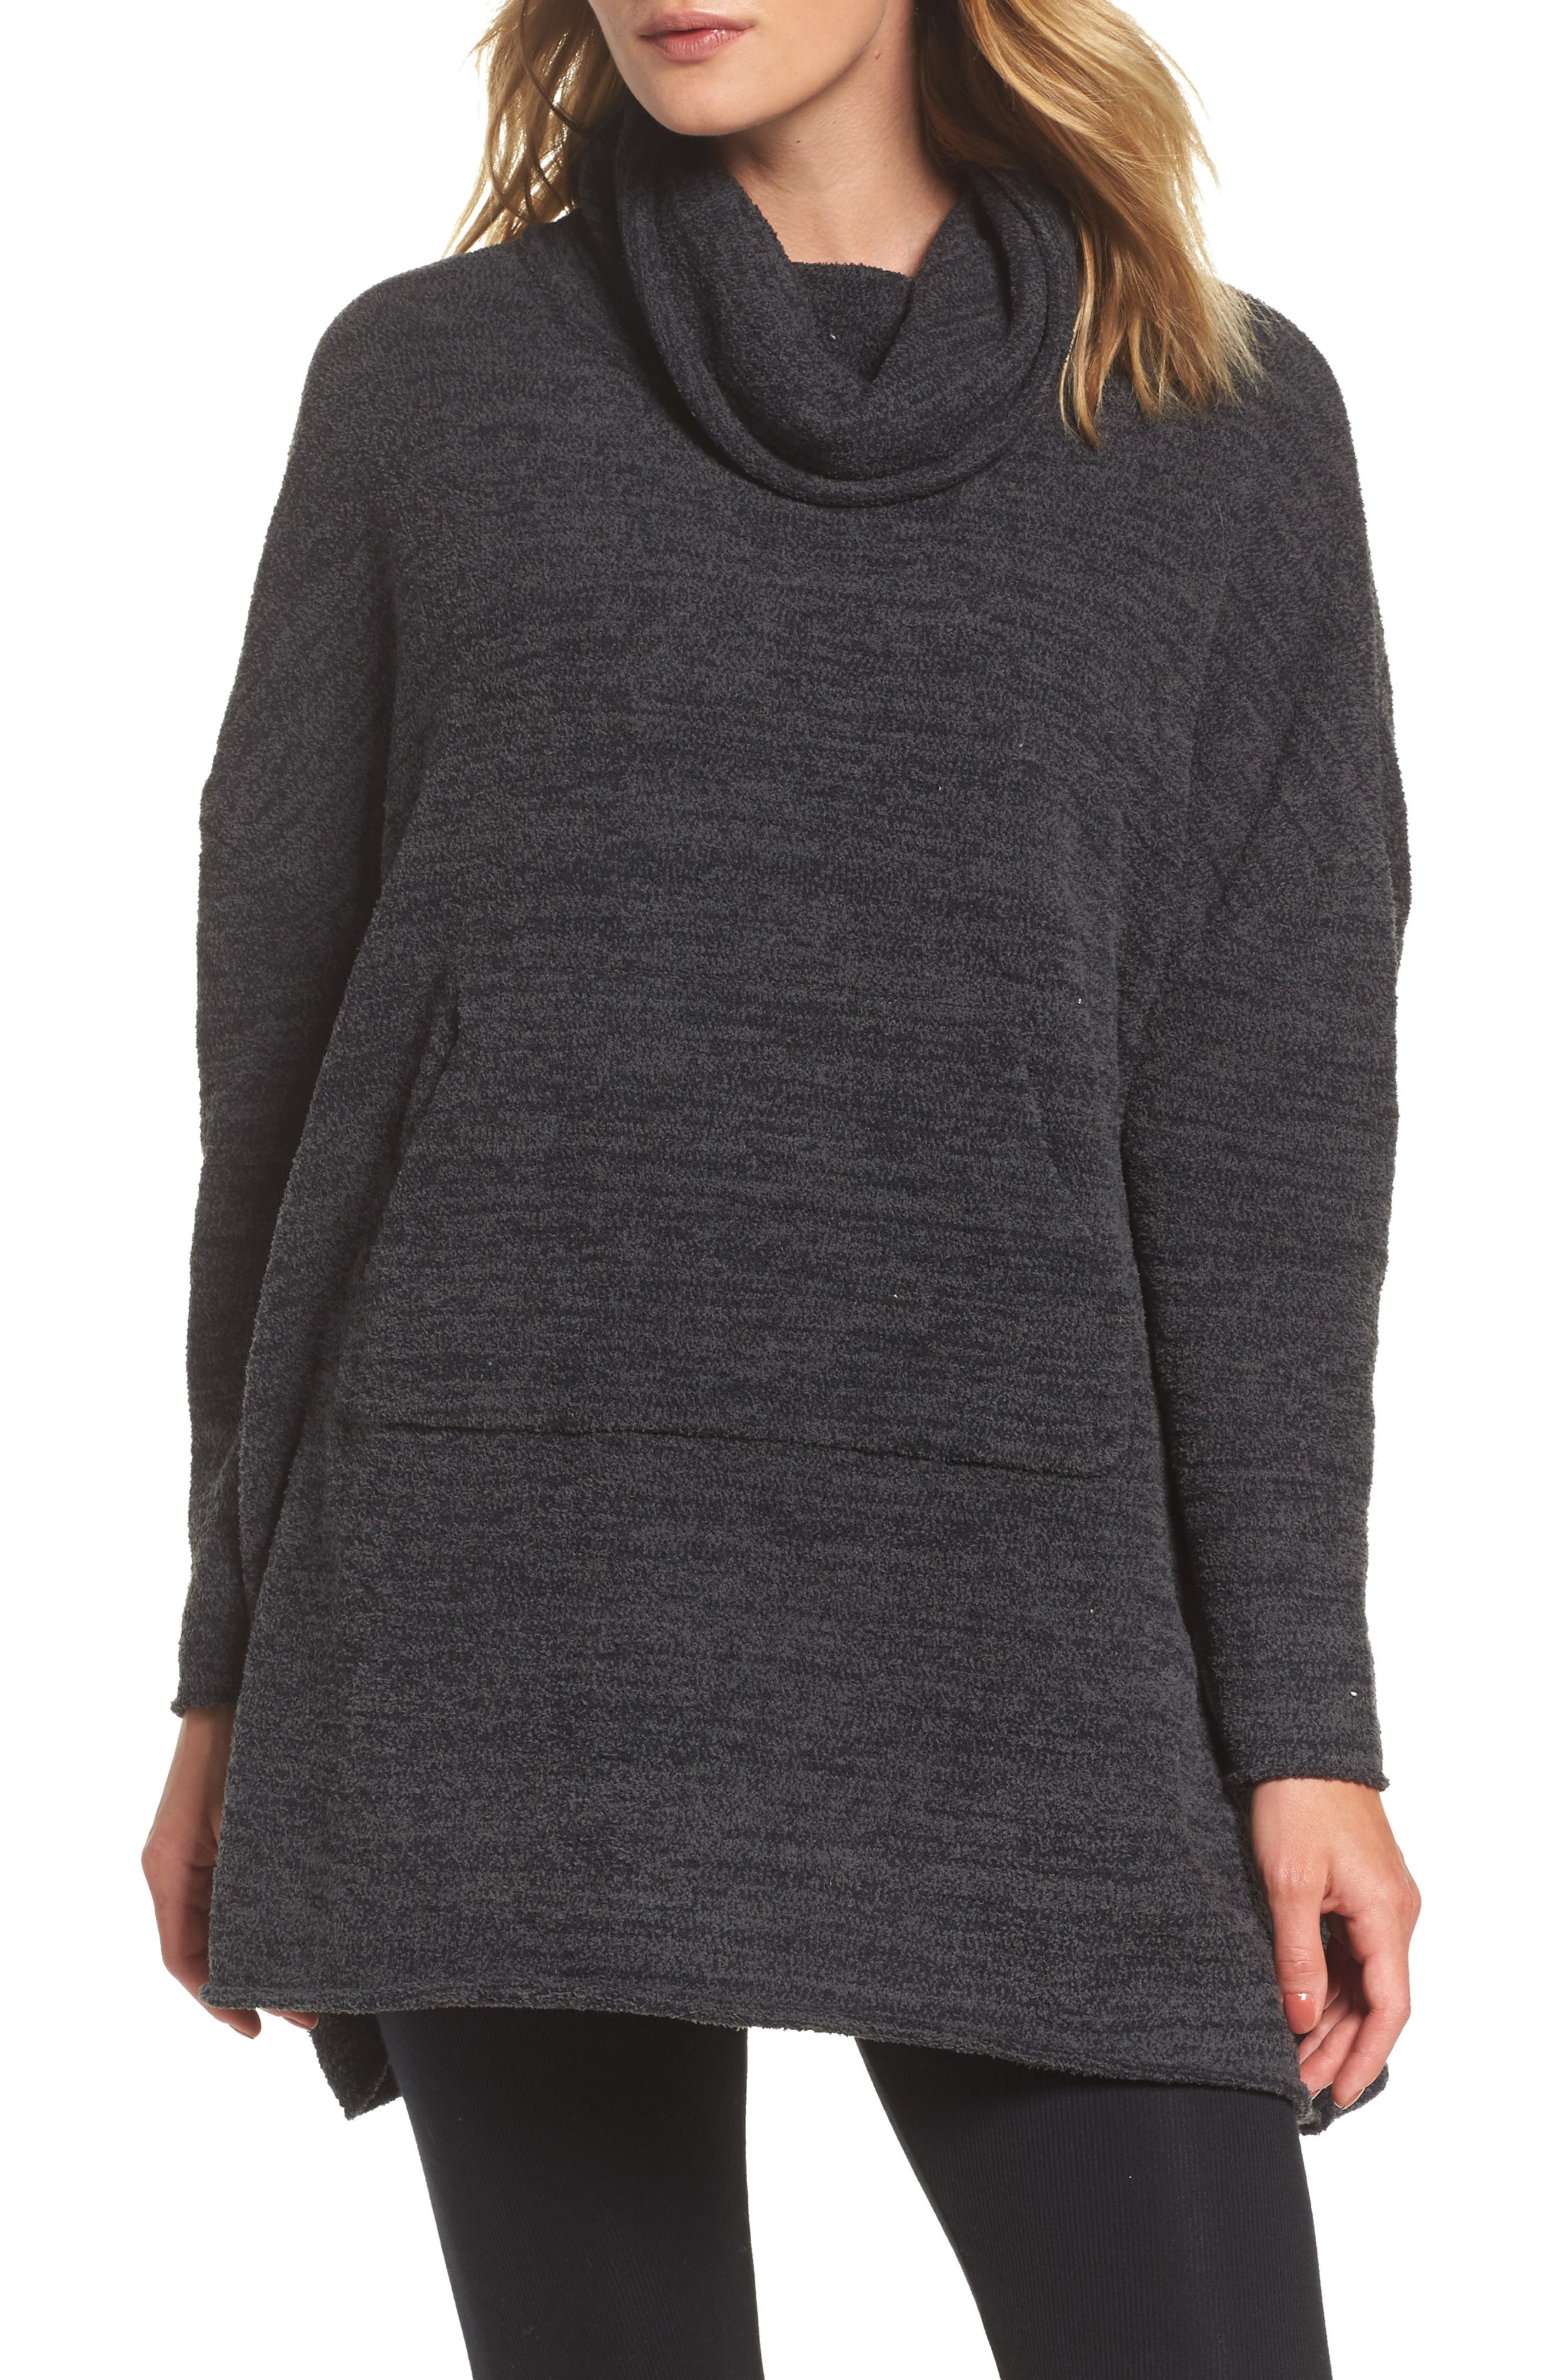 005dd071c14a2 Women's Cowl Neck Sweaters | Nordstrom